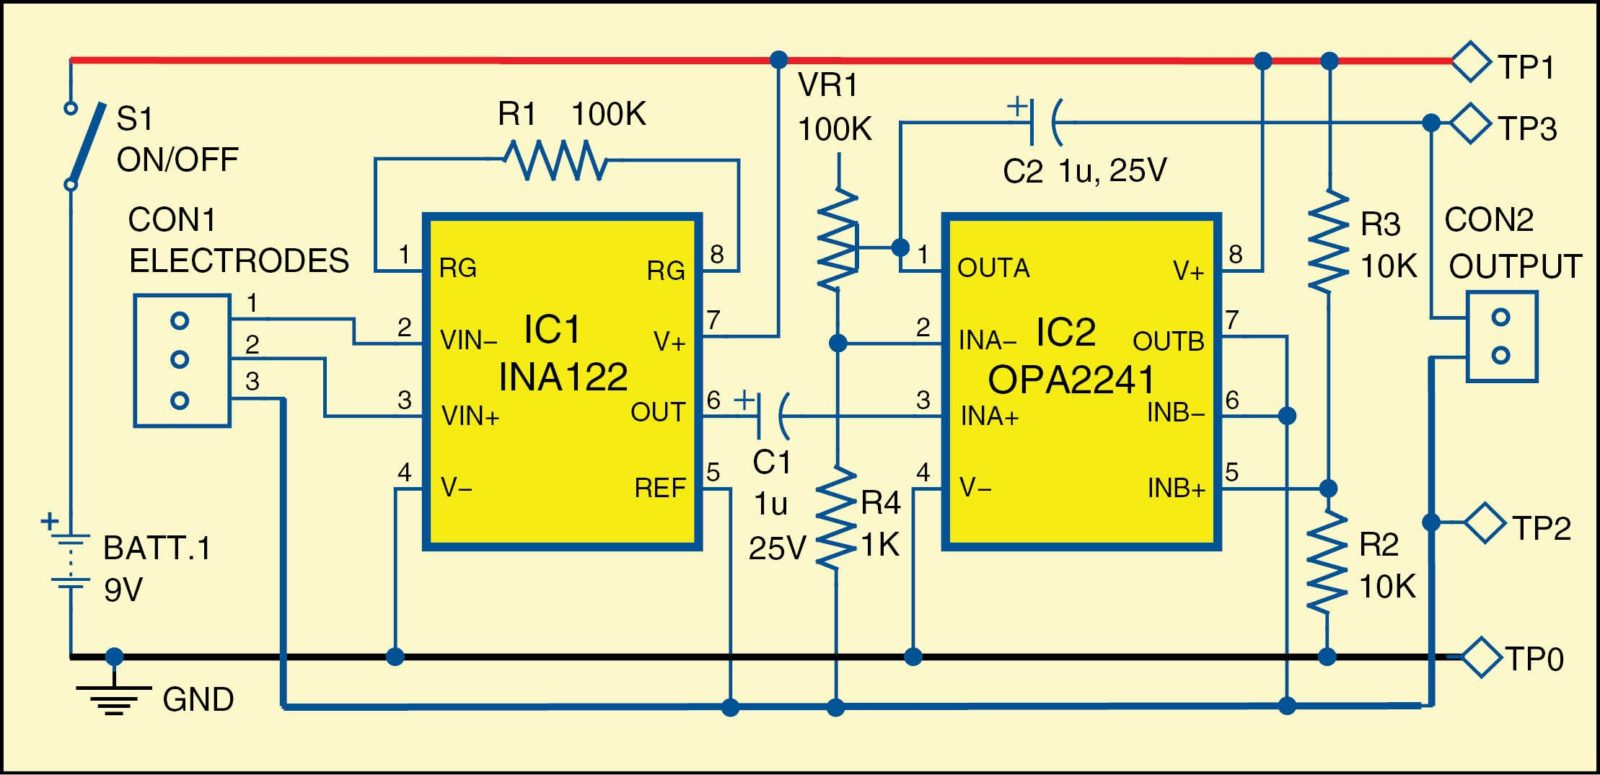 Circuit diagram of HMI through Electromyography